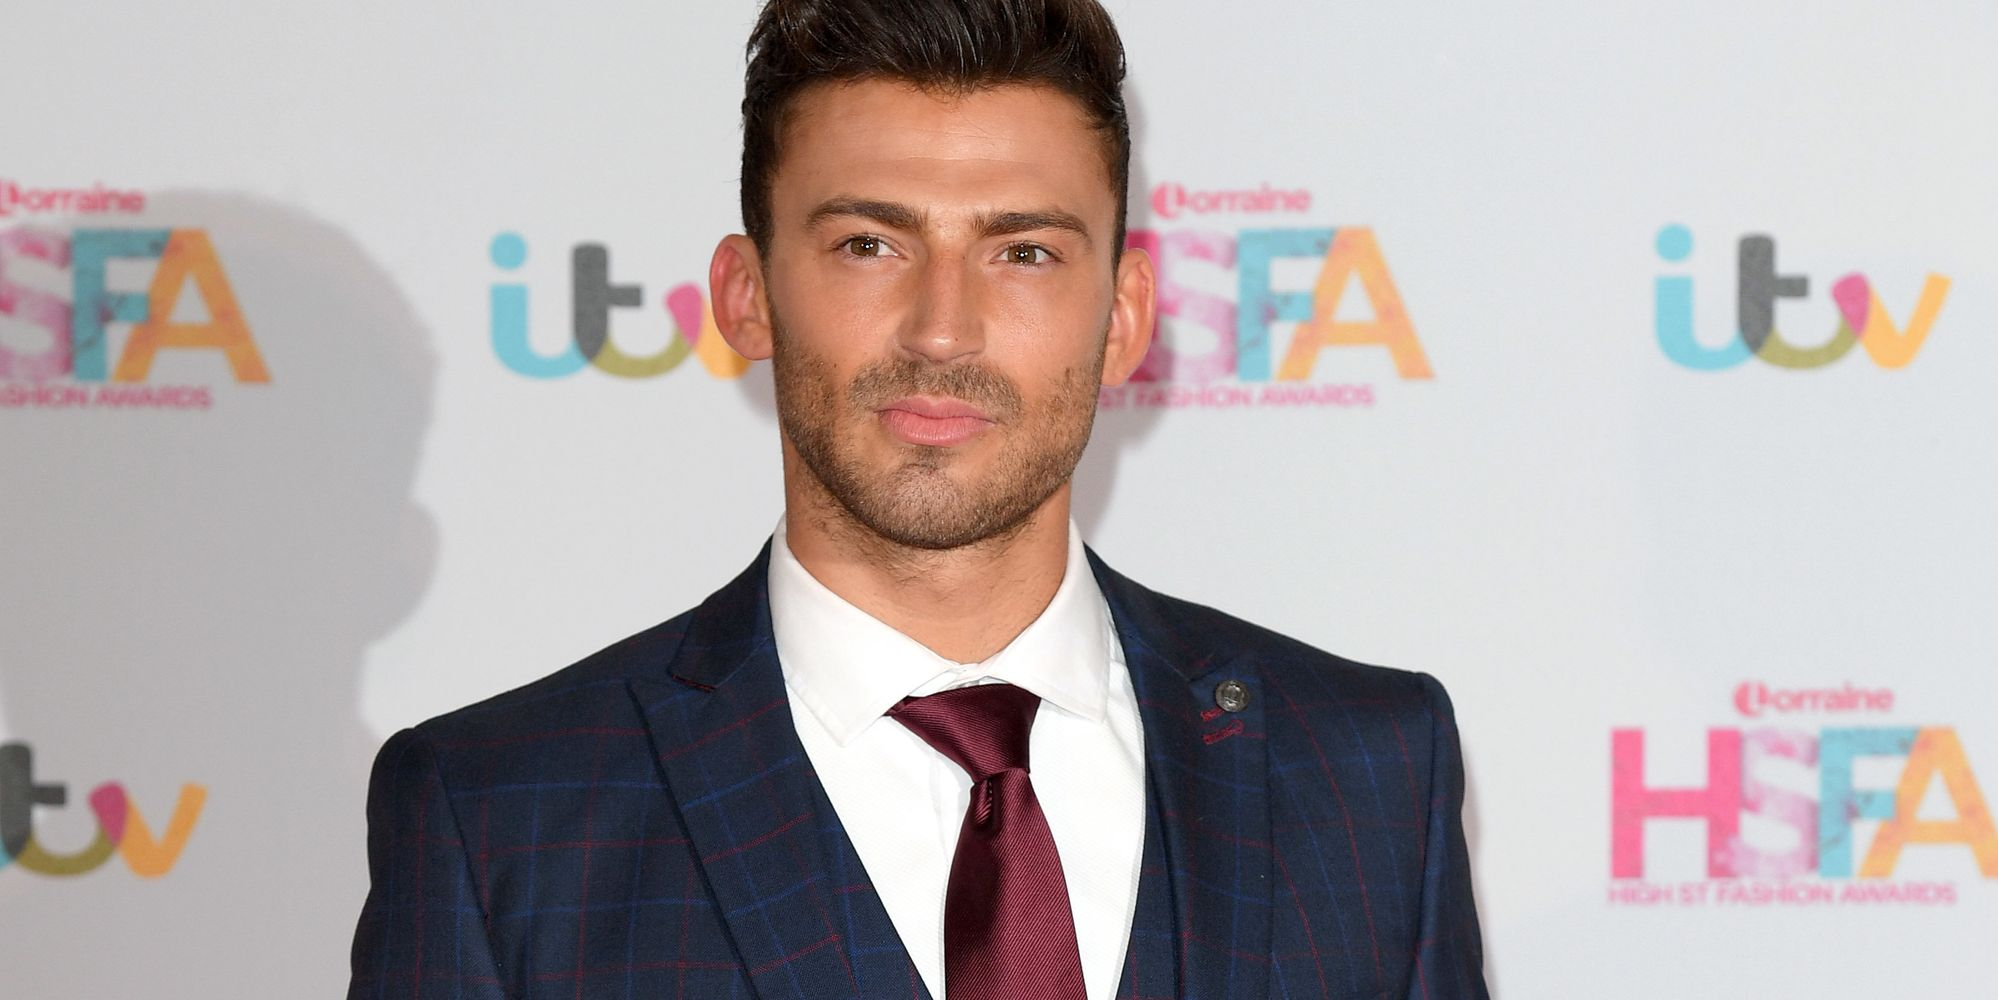 Jake Quickenden Nude Photo Leak: Stars Say He Doesnt